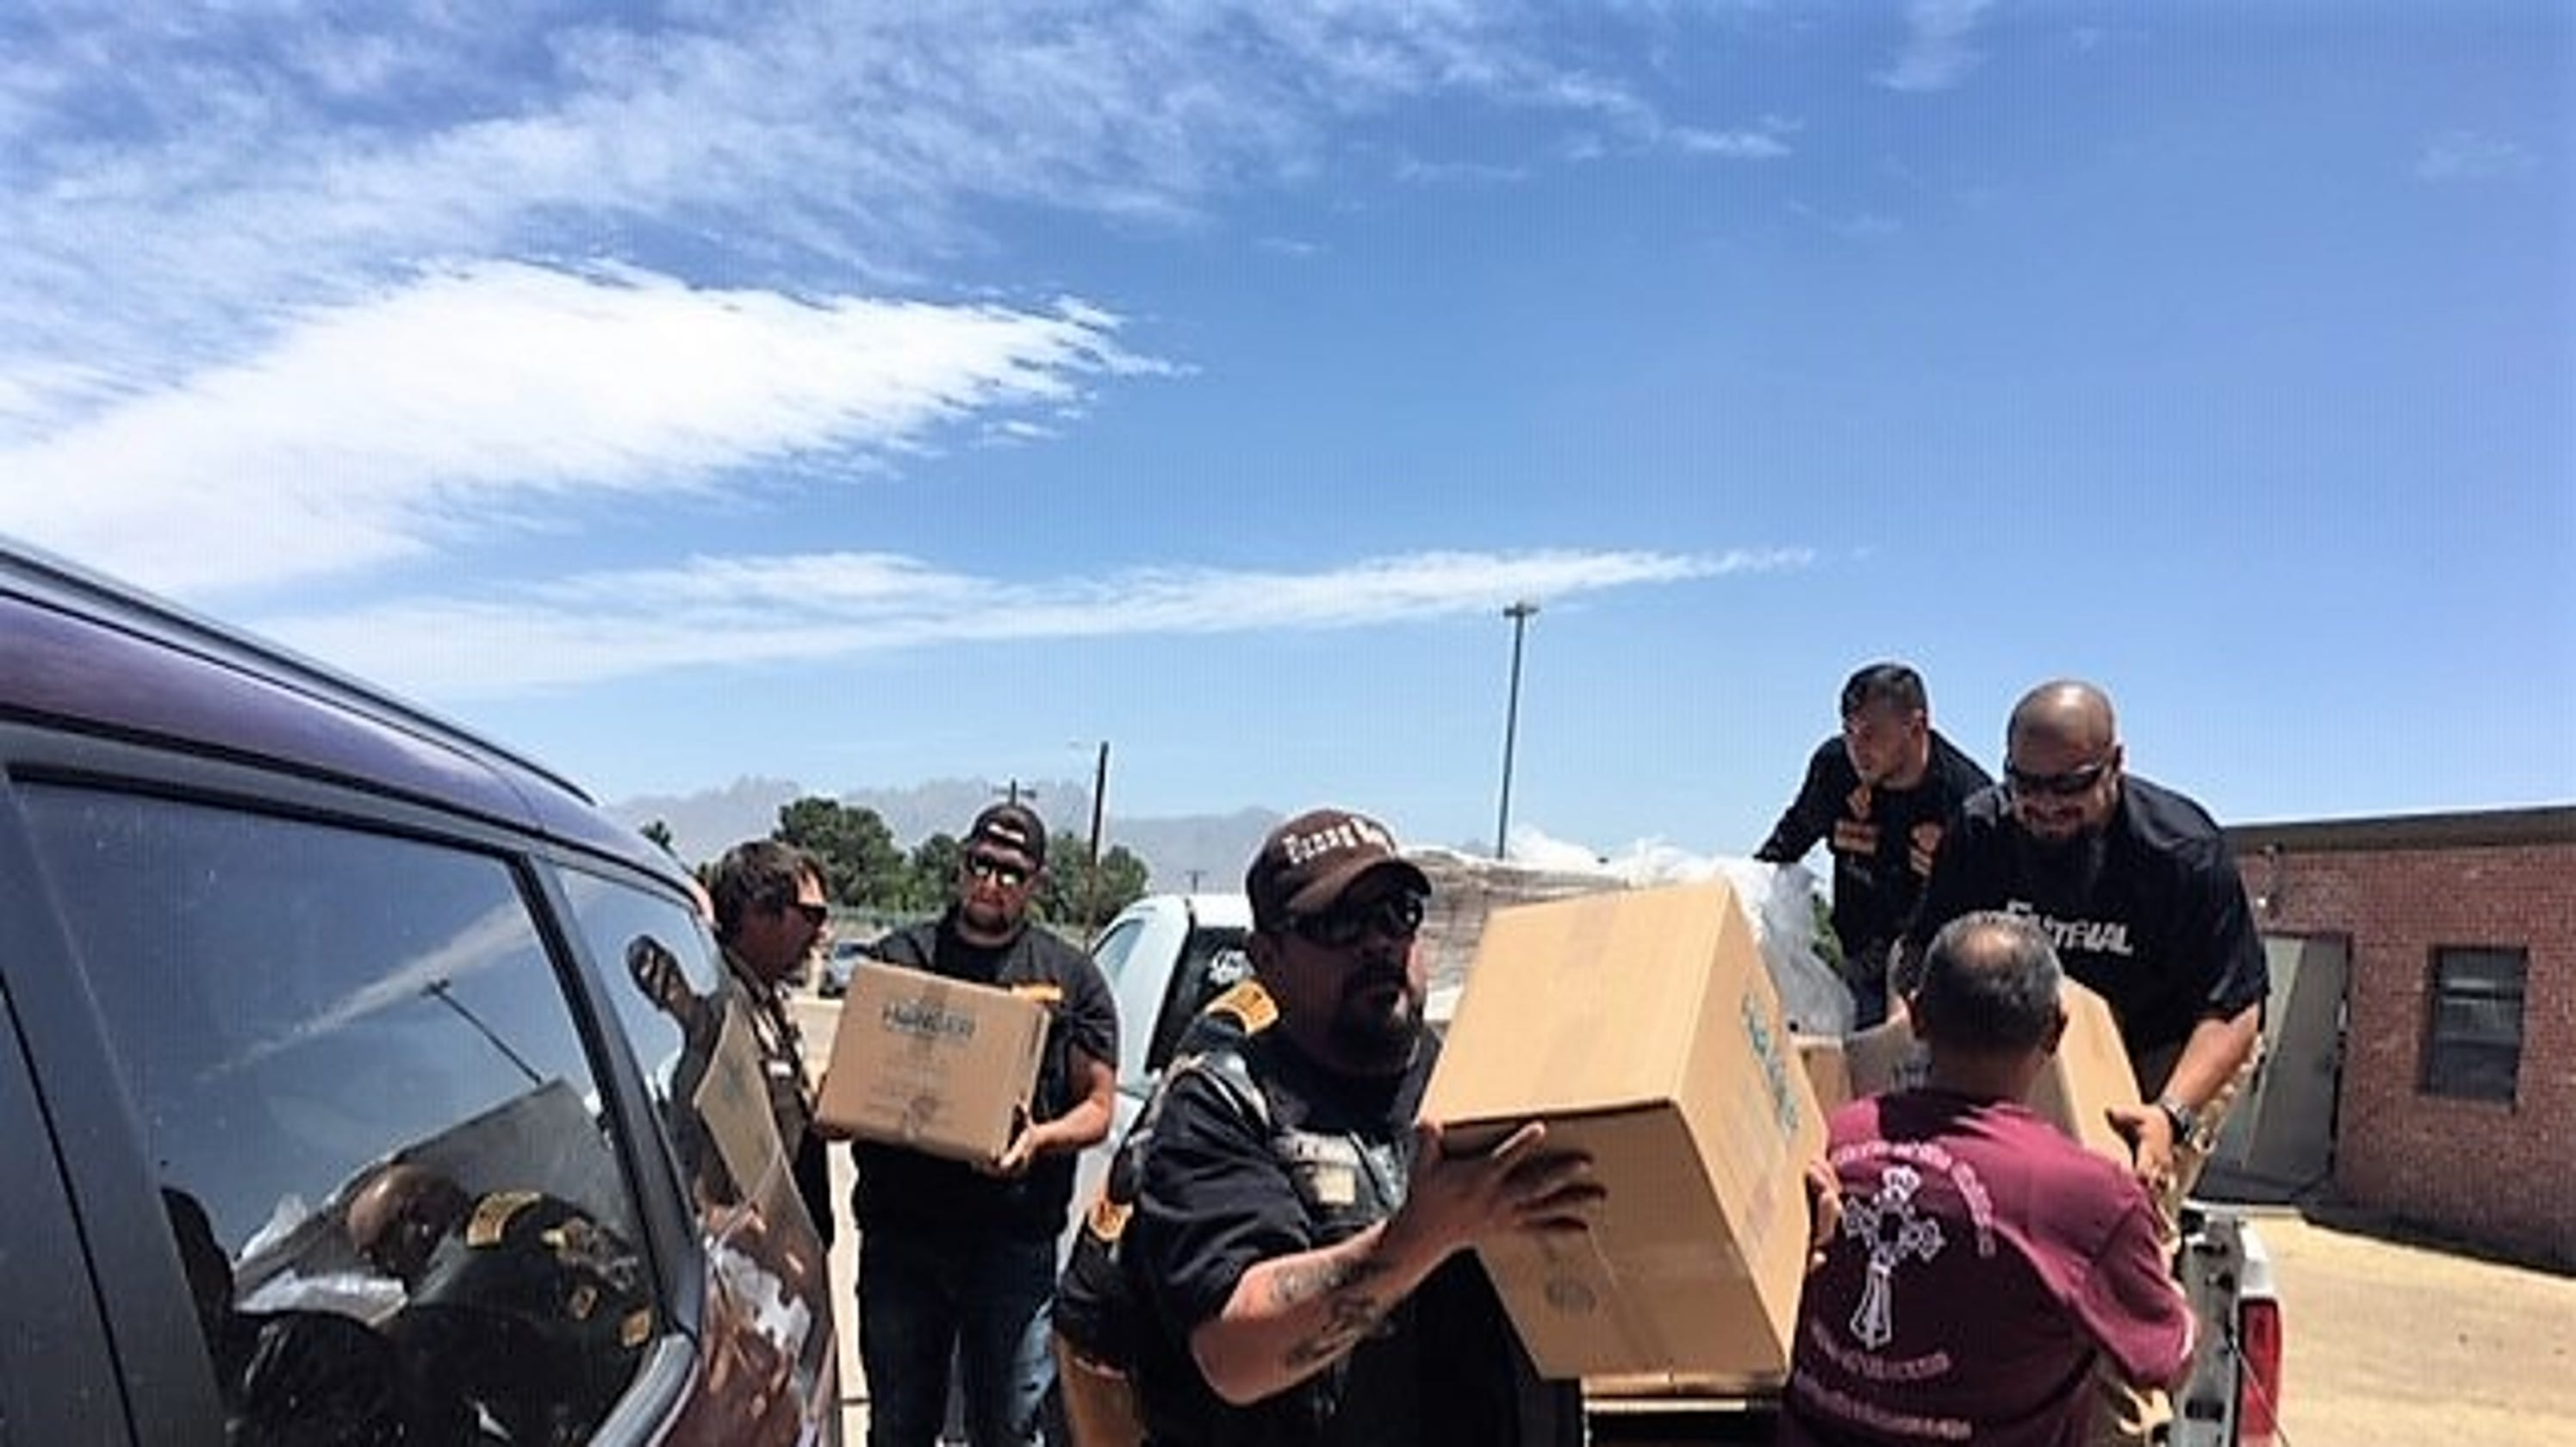 Bikers bring 30,000 meals to migrants at New Mexico shelter